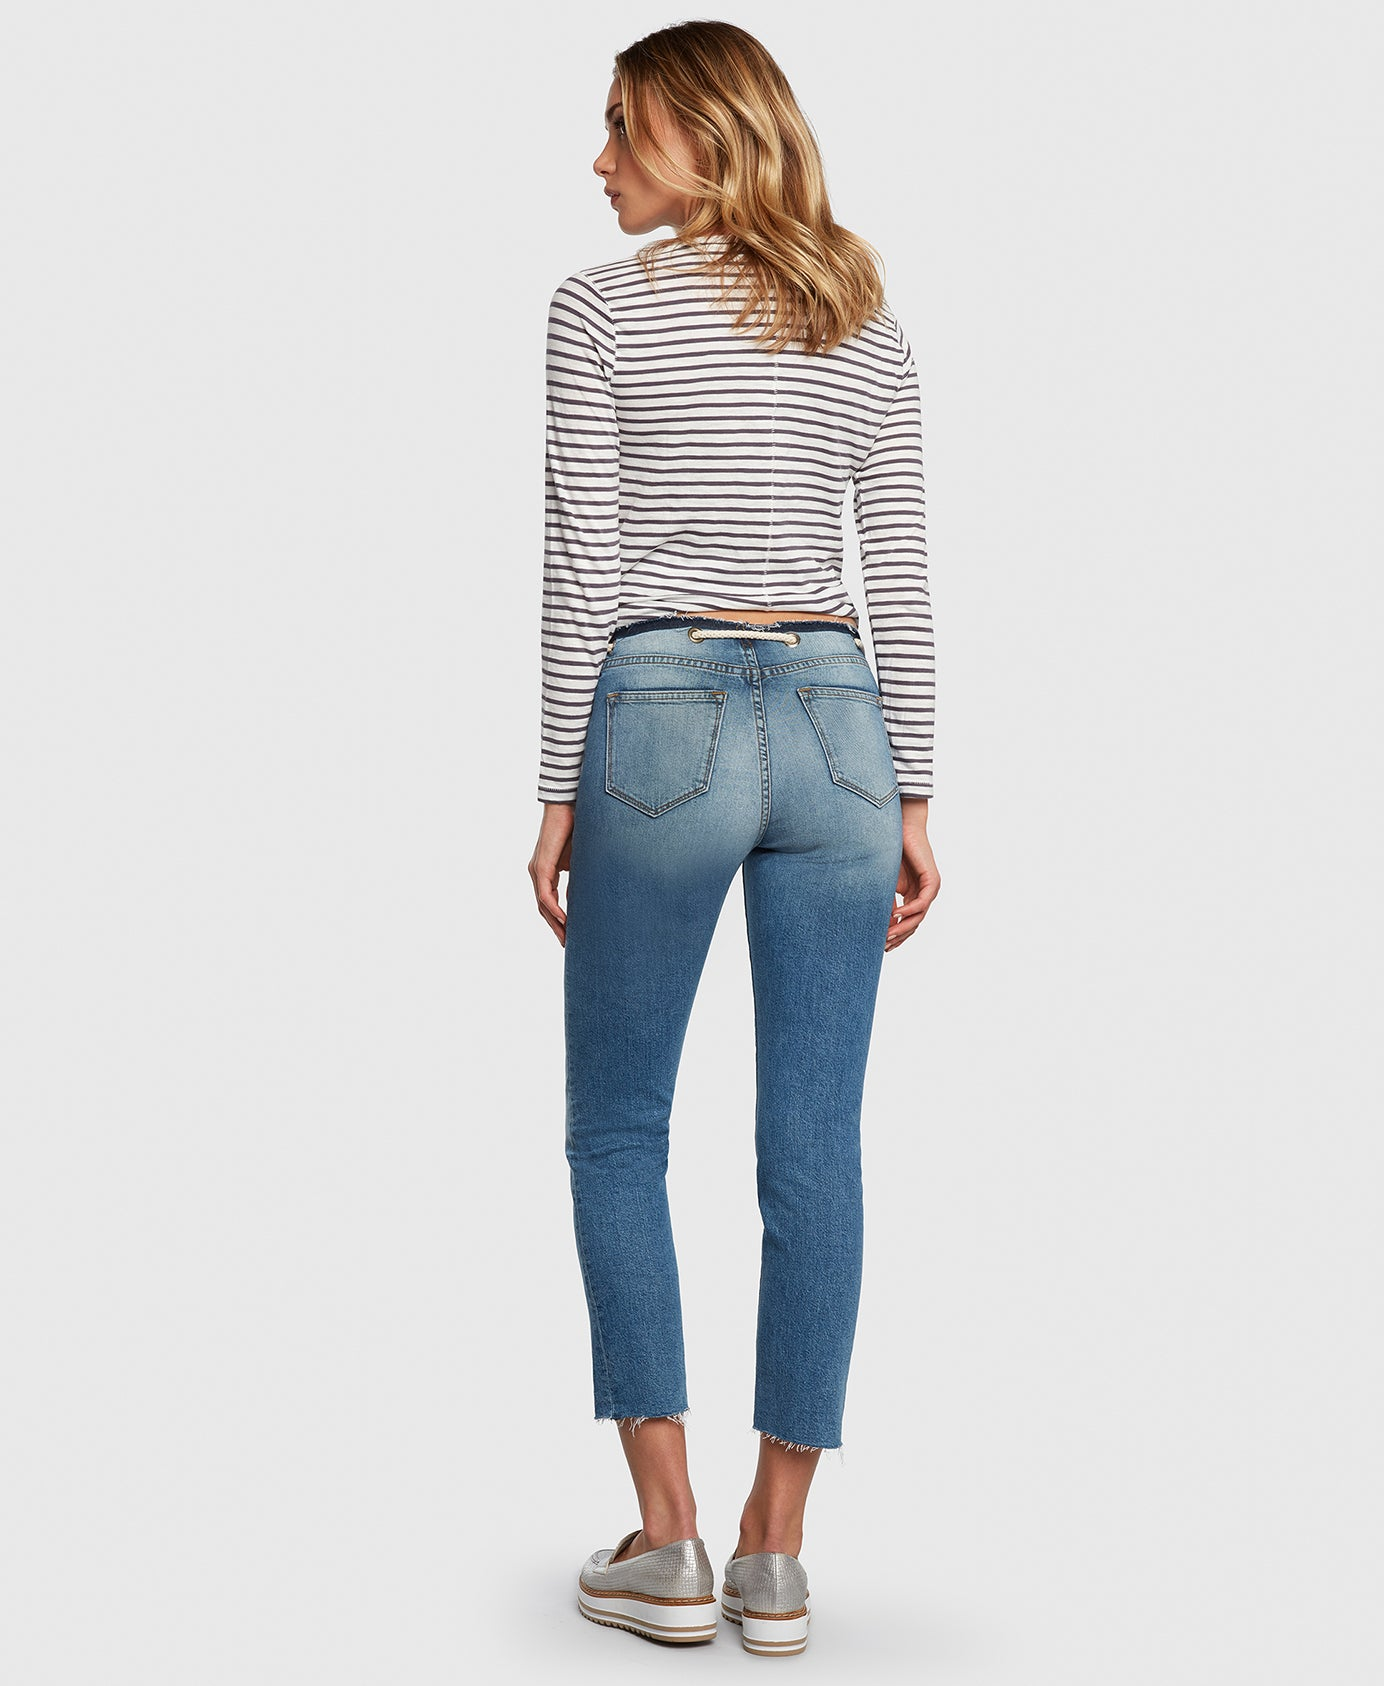 Principle CASTAWAY in Holiday cropped jeans back